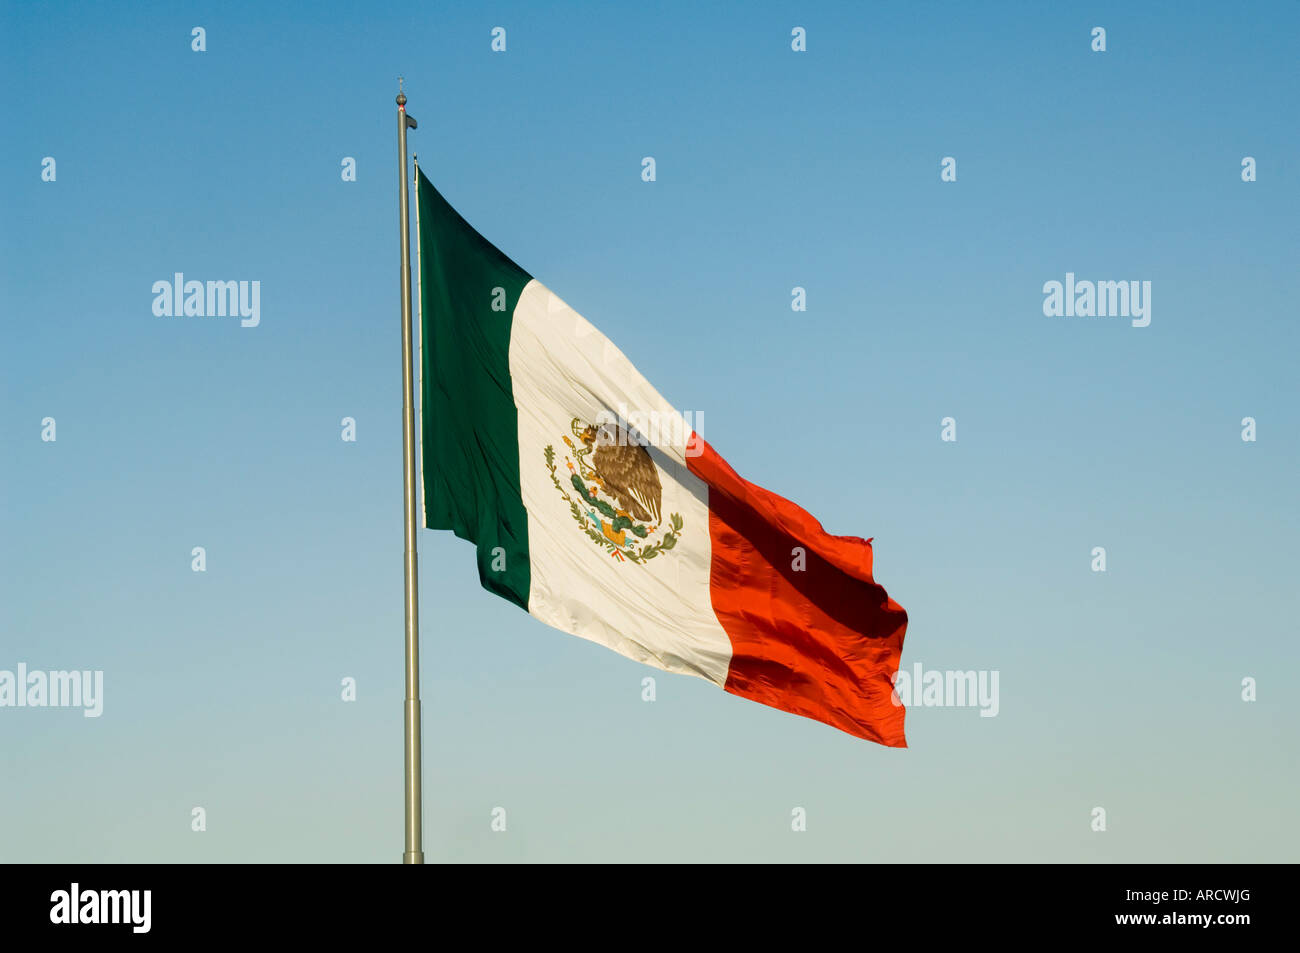 Mexican flag, Mexico, North America - Stock Image